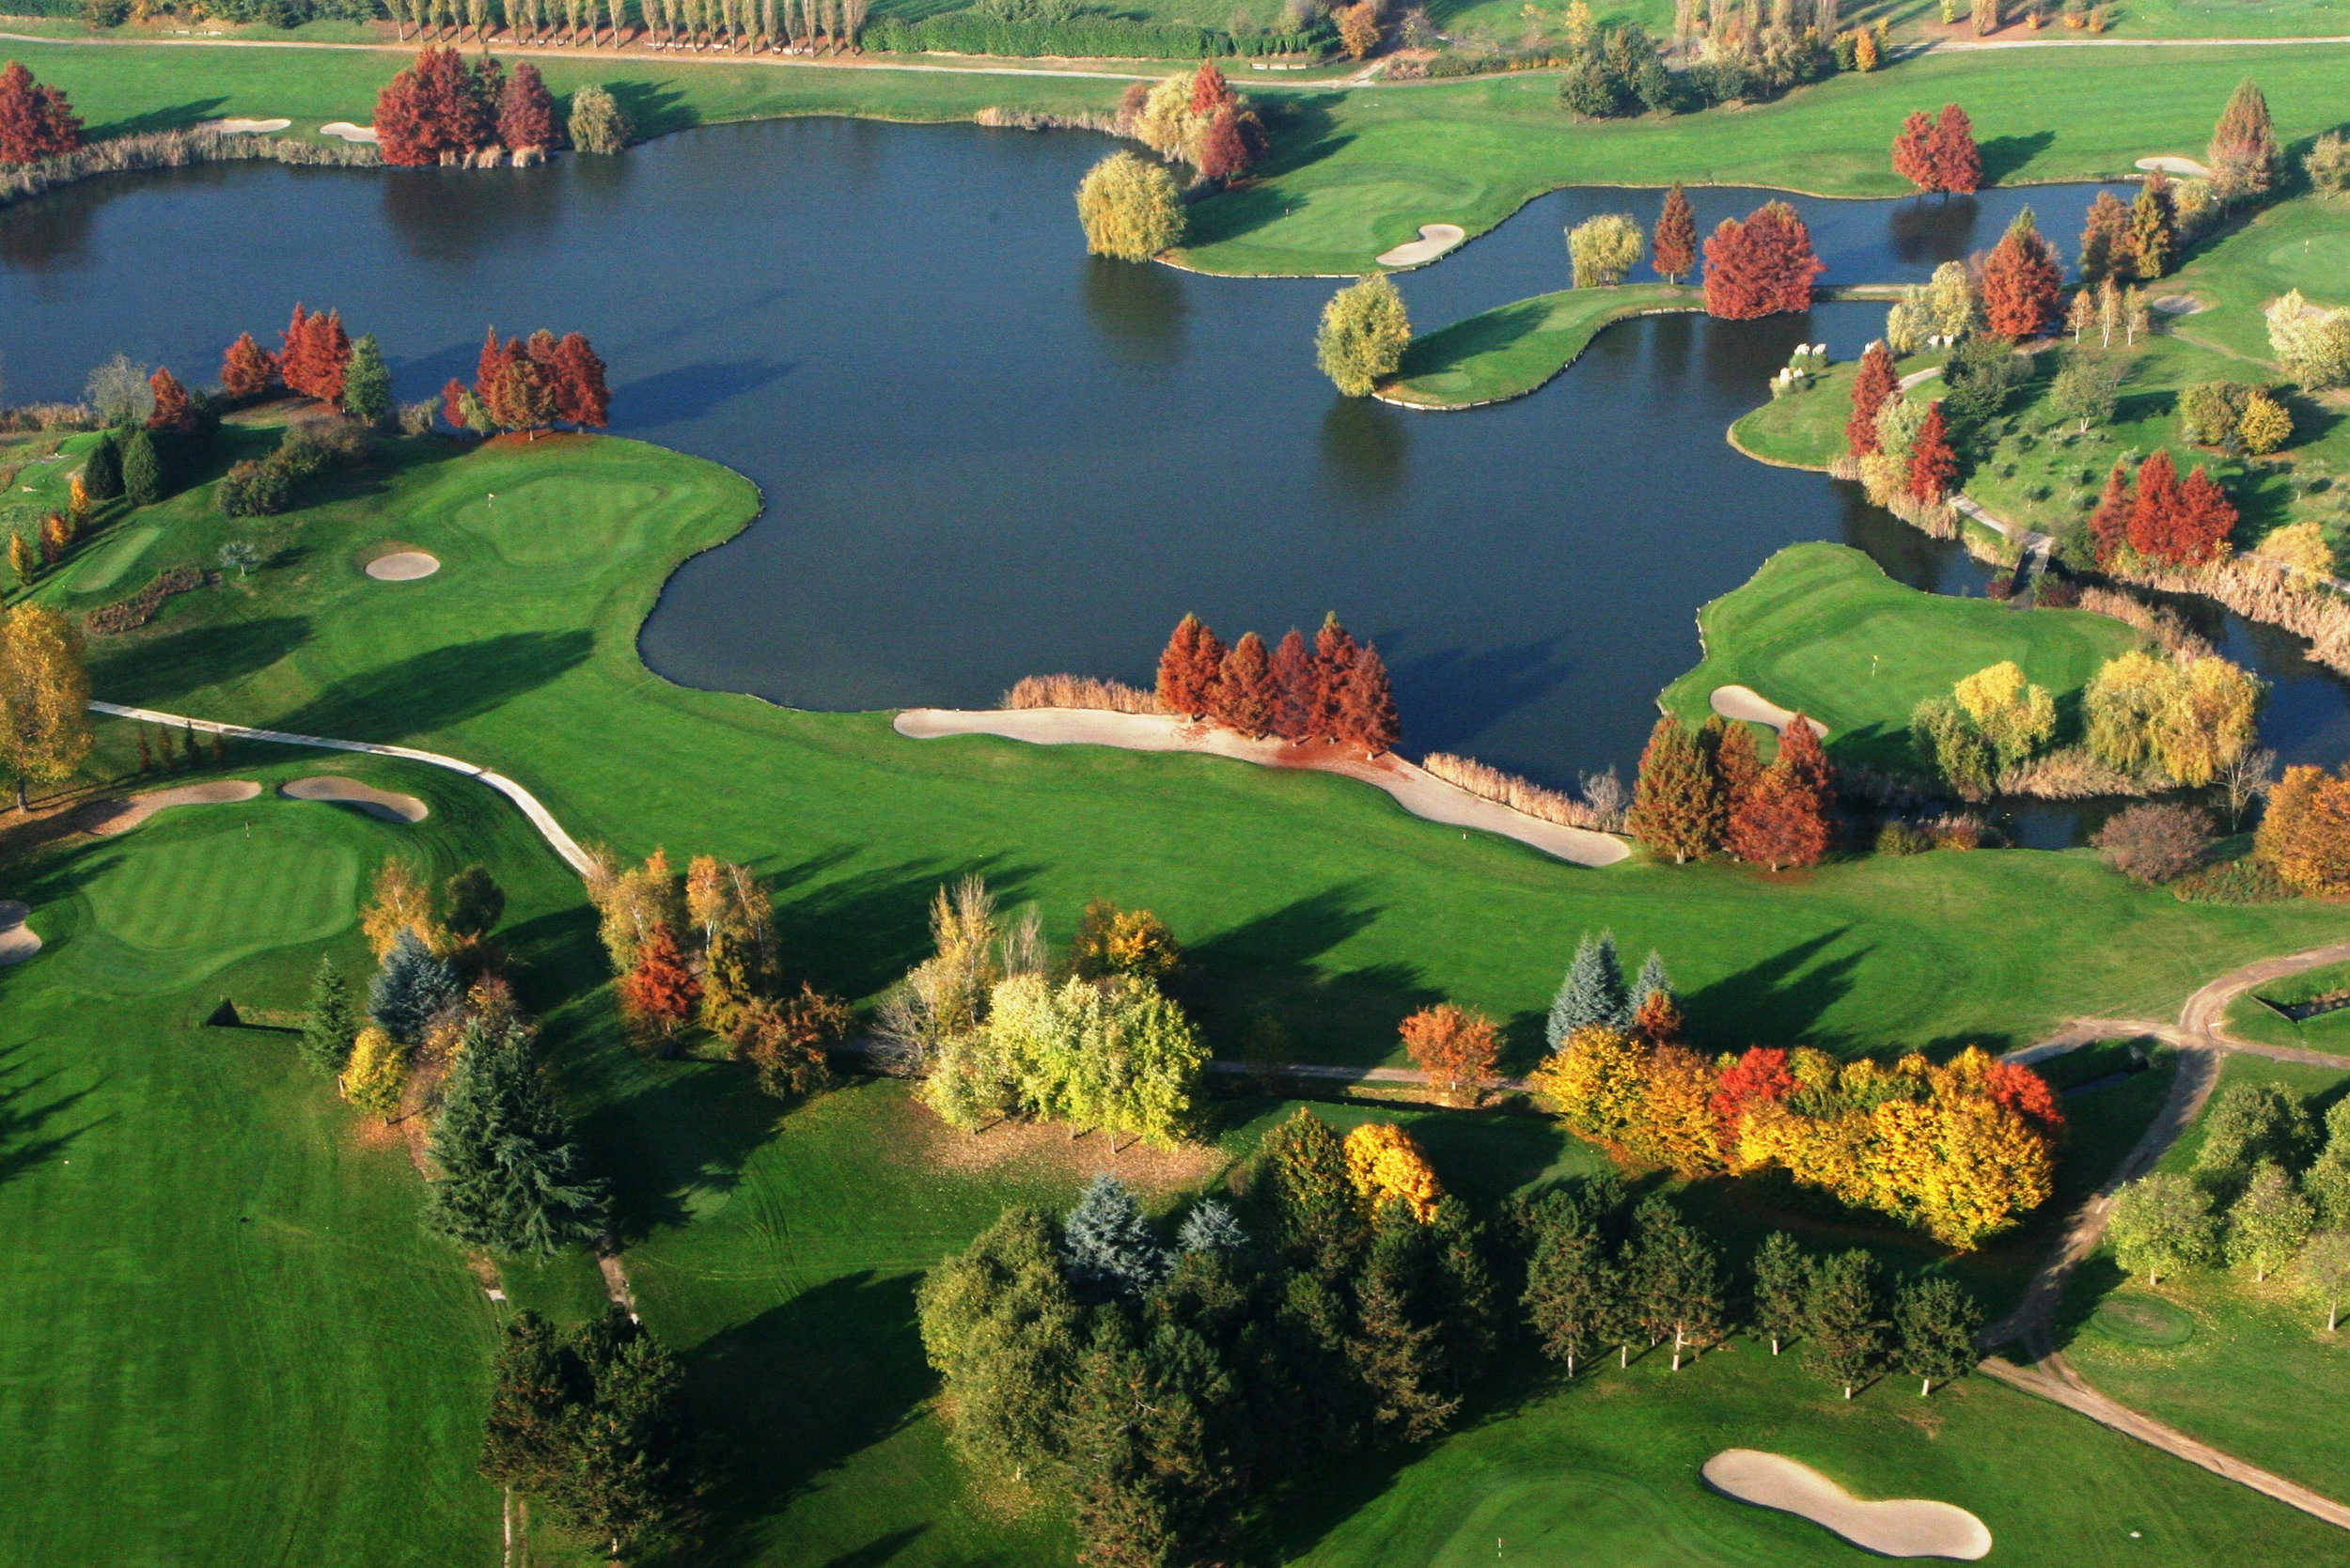 franciacorta-golf-club-airview-photo.jpg